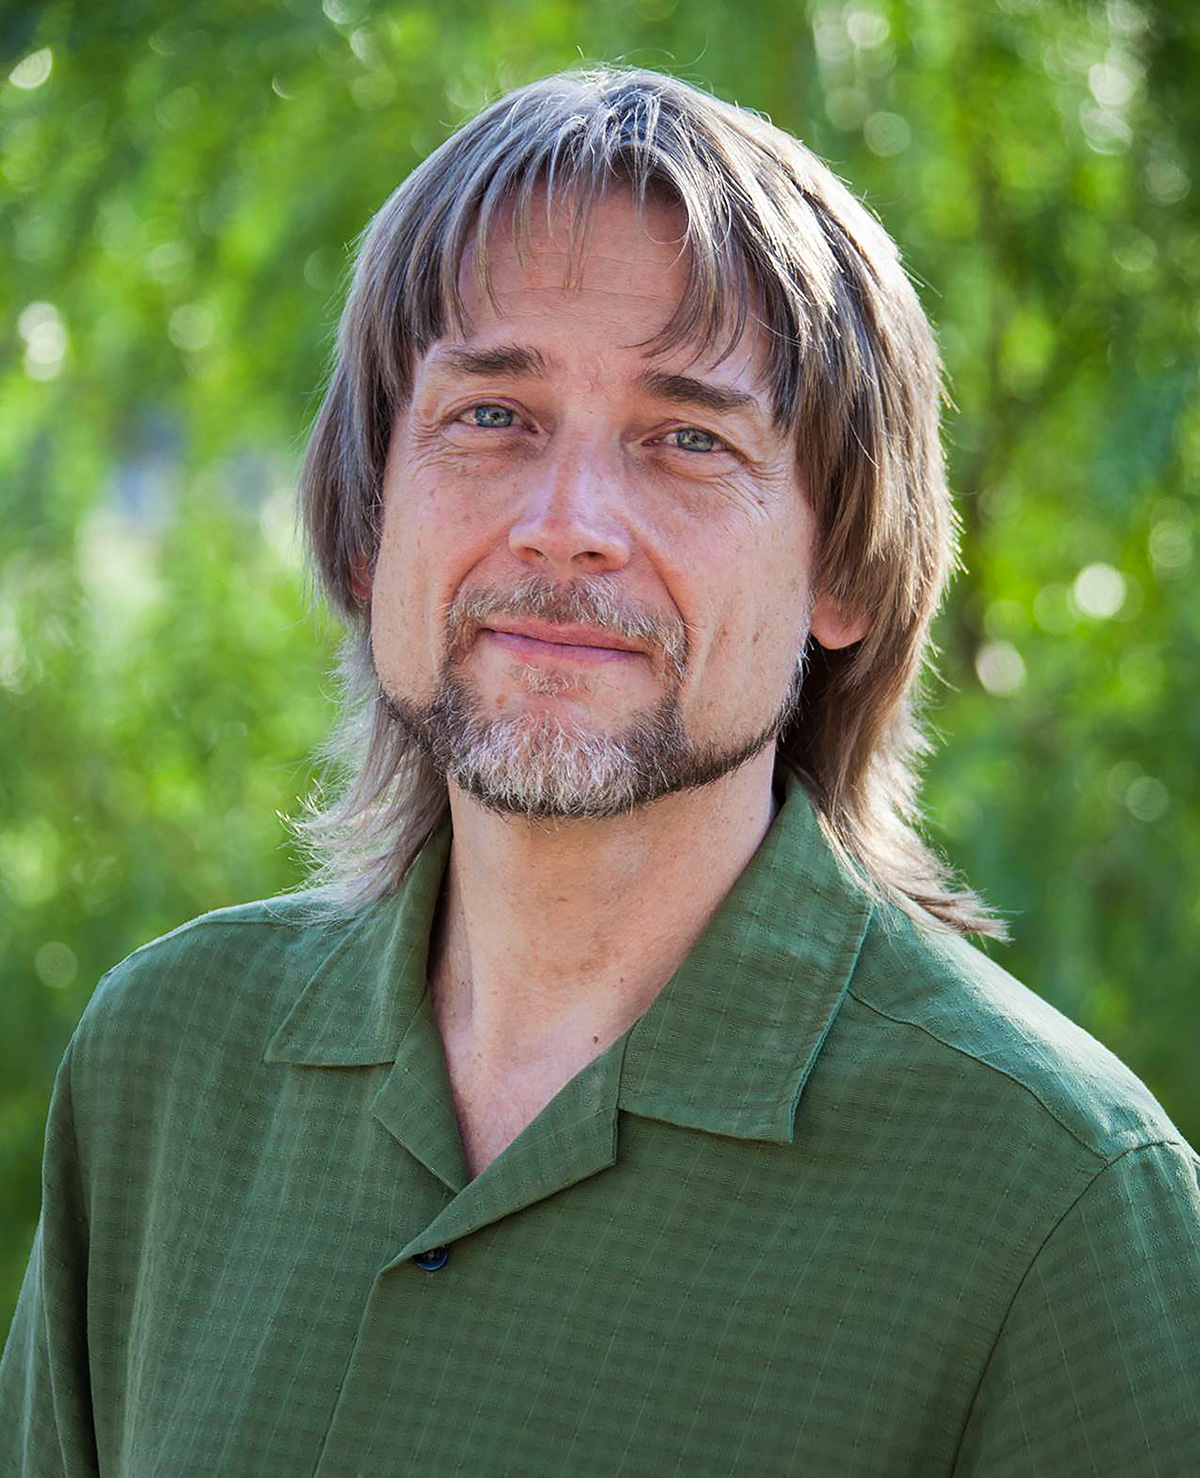 Steve Whitmire | Speakers Bureau and Booking Agent Info